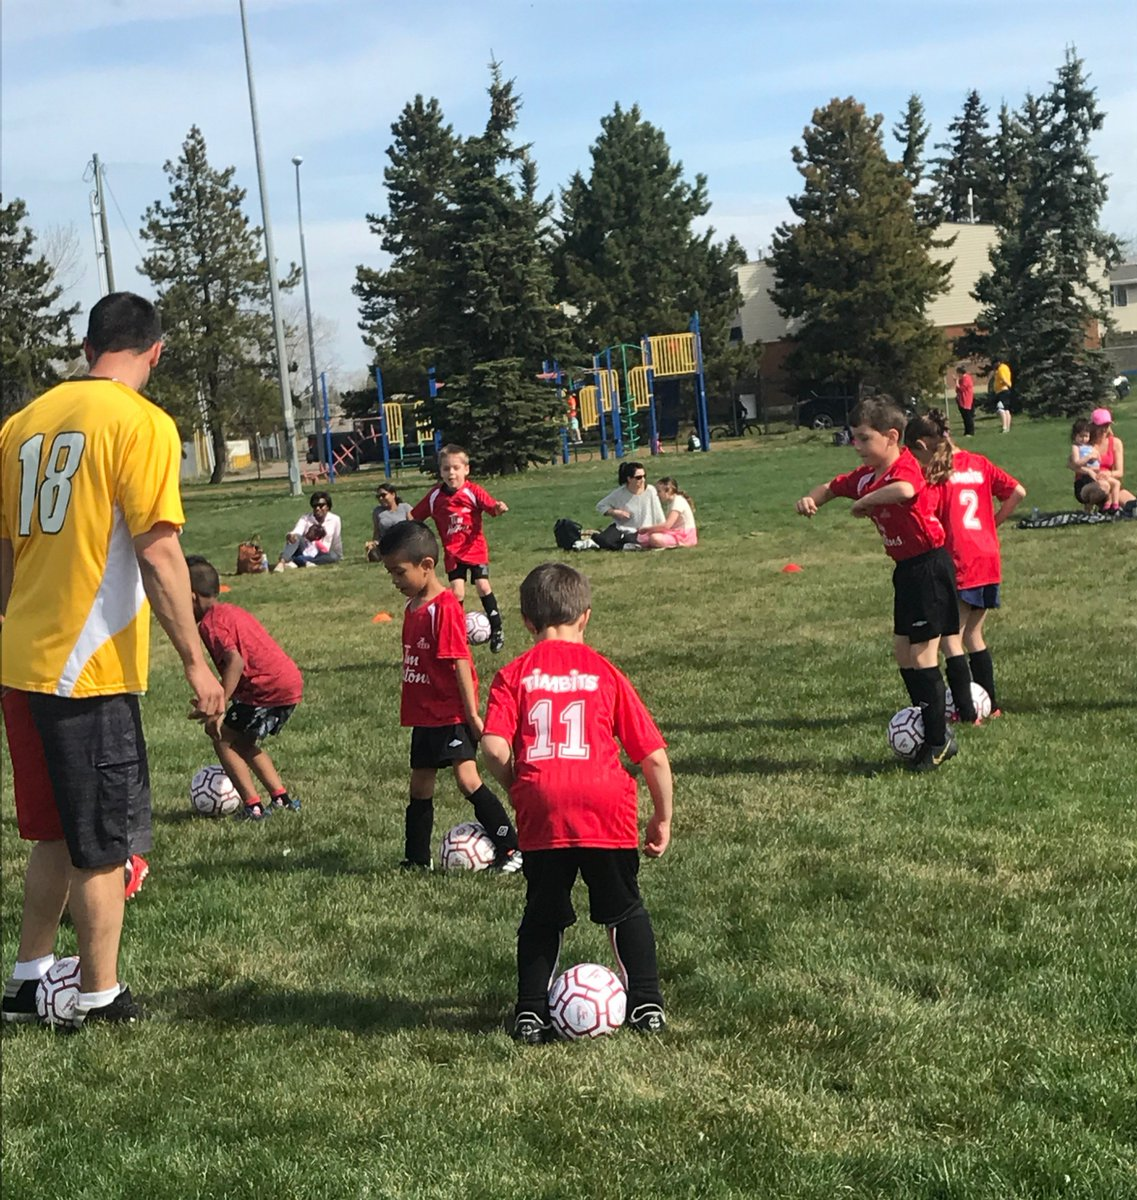 Alberta Soccer's John Clubb, implementing the Preferred Training Model in Grande Prairie's Soccer programming over the past week. The goal? Engaged players AND coaches!  Photos: http://ow.ly/V9uX50ua045  Request a visit in your community: http://ow.ly/StPz50u9VMJ  #ThisIsGrassroots